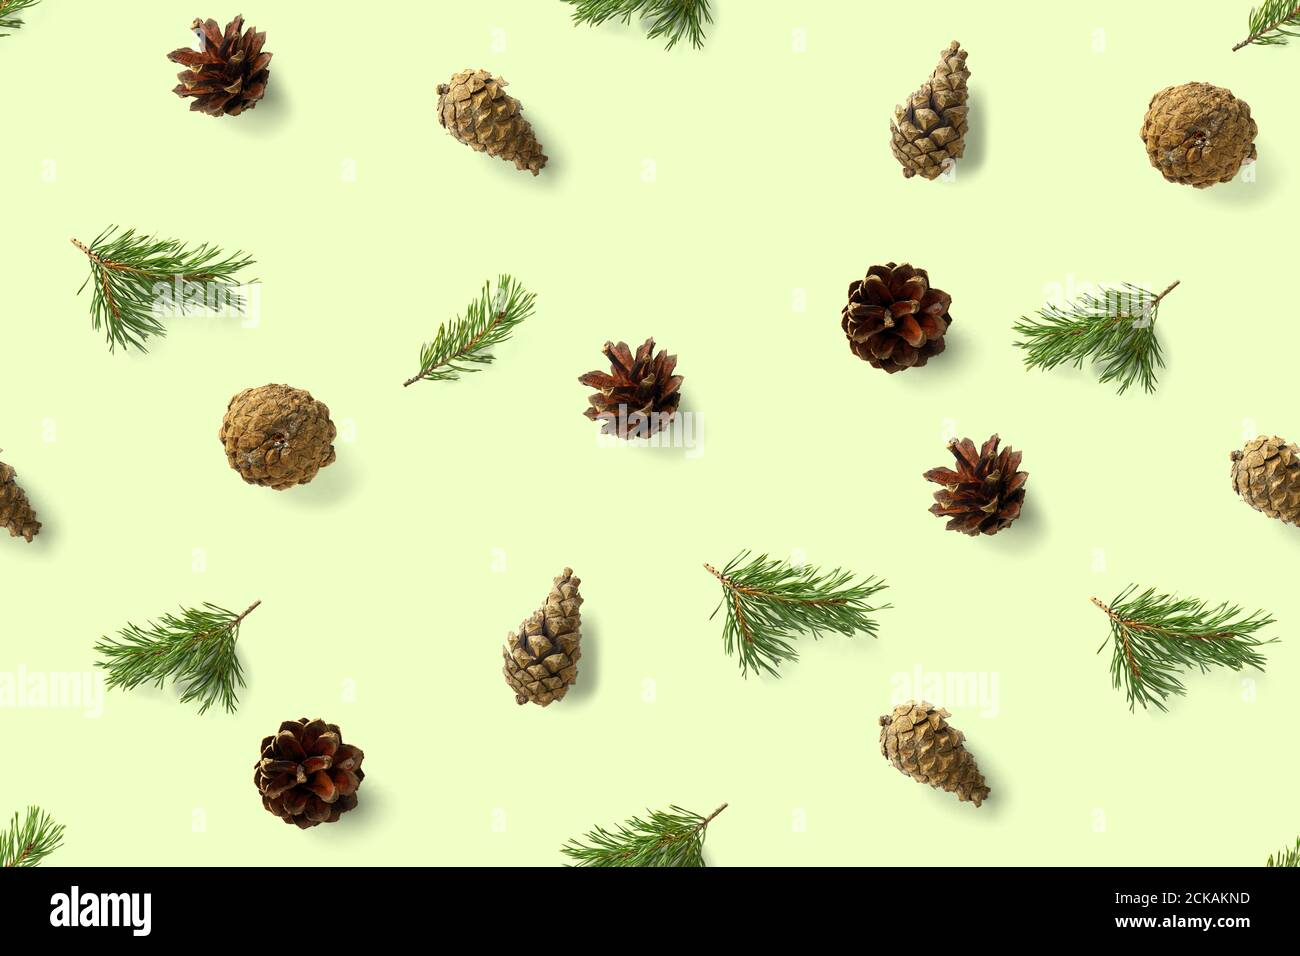 Seamless Christmas Pattern From Pine Cones On Green Background Modern Pine Cone Christmas Collage Print For Paper Fabric Wallpaper Pinecones Stock Photo Alamy